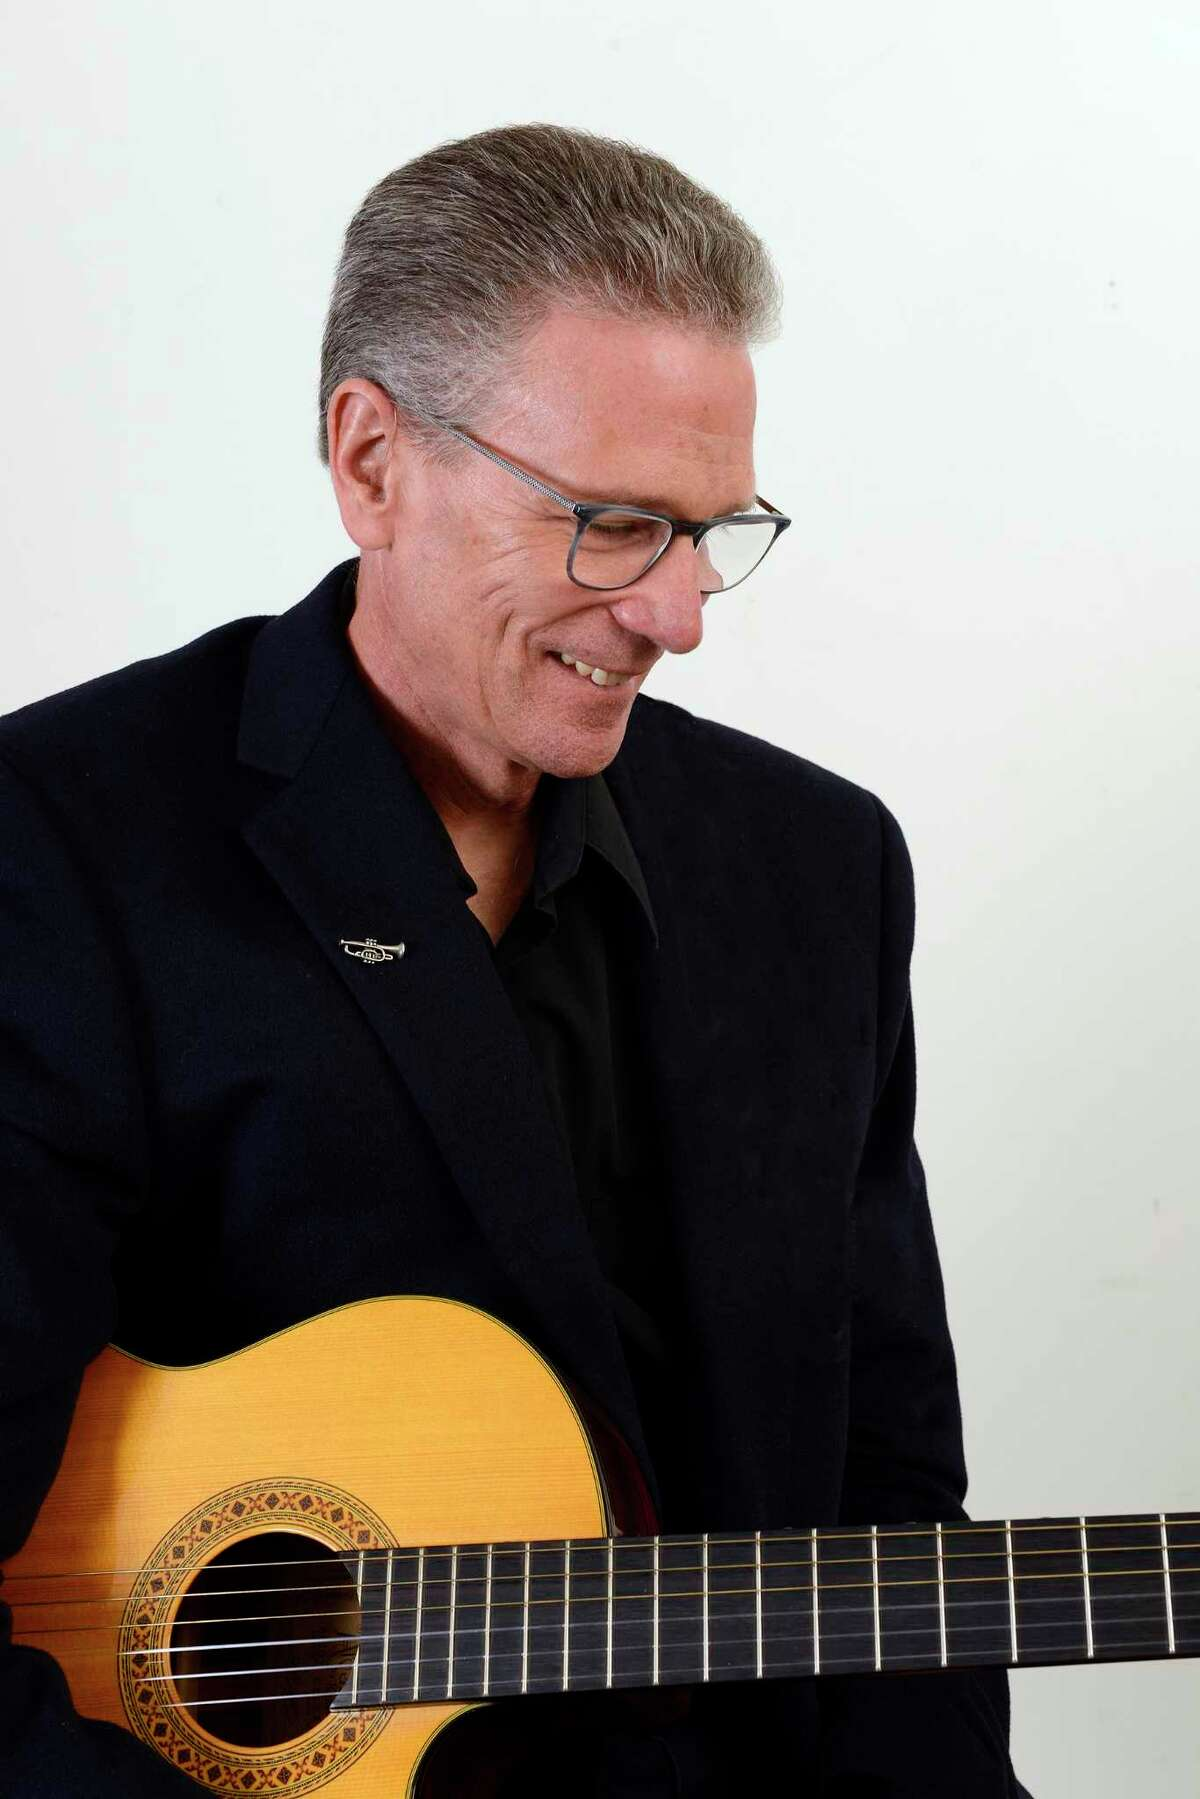 Guitarist/composer Doug Hartline will perform along with a band and vocalists at an encore benefit concert at Christ Church in Redding on Jan. 26.